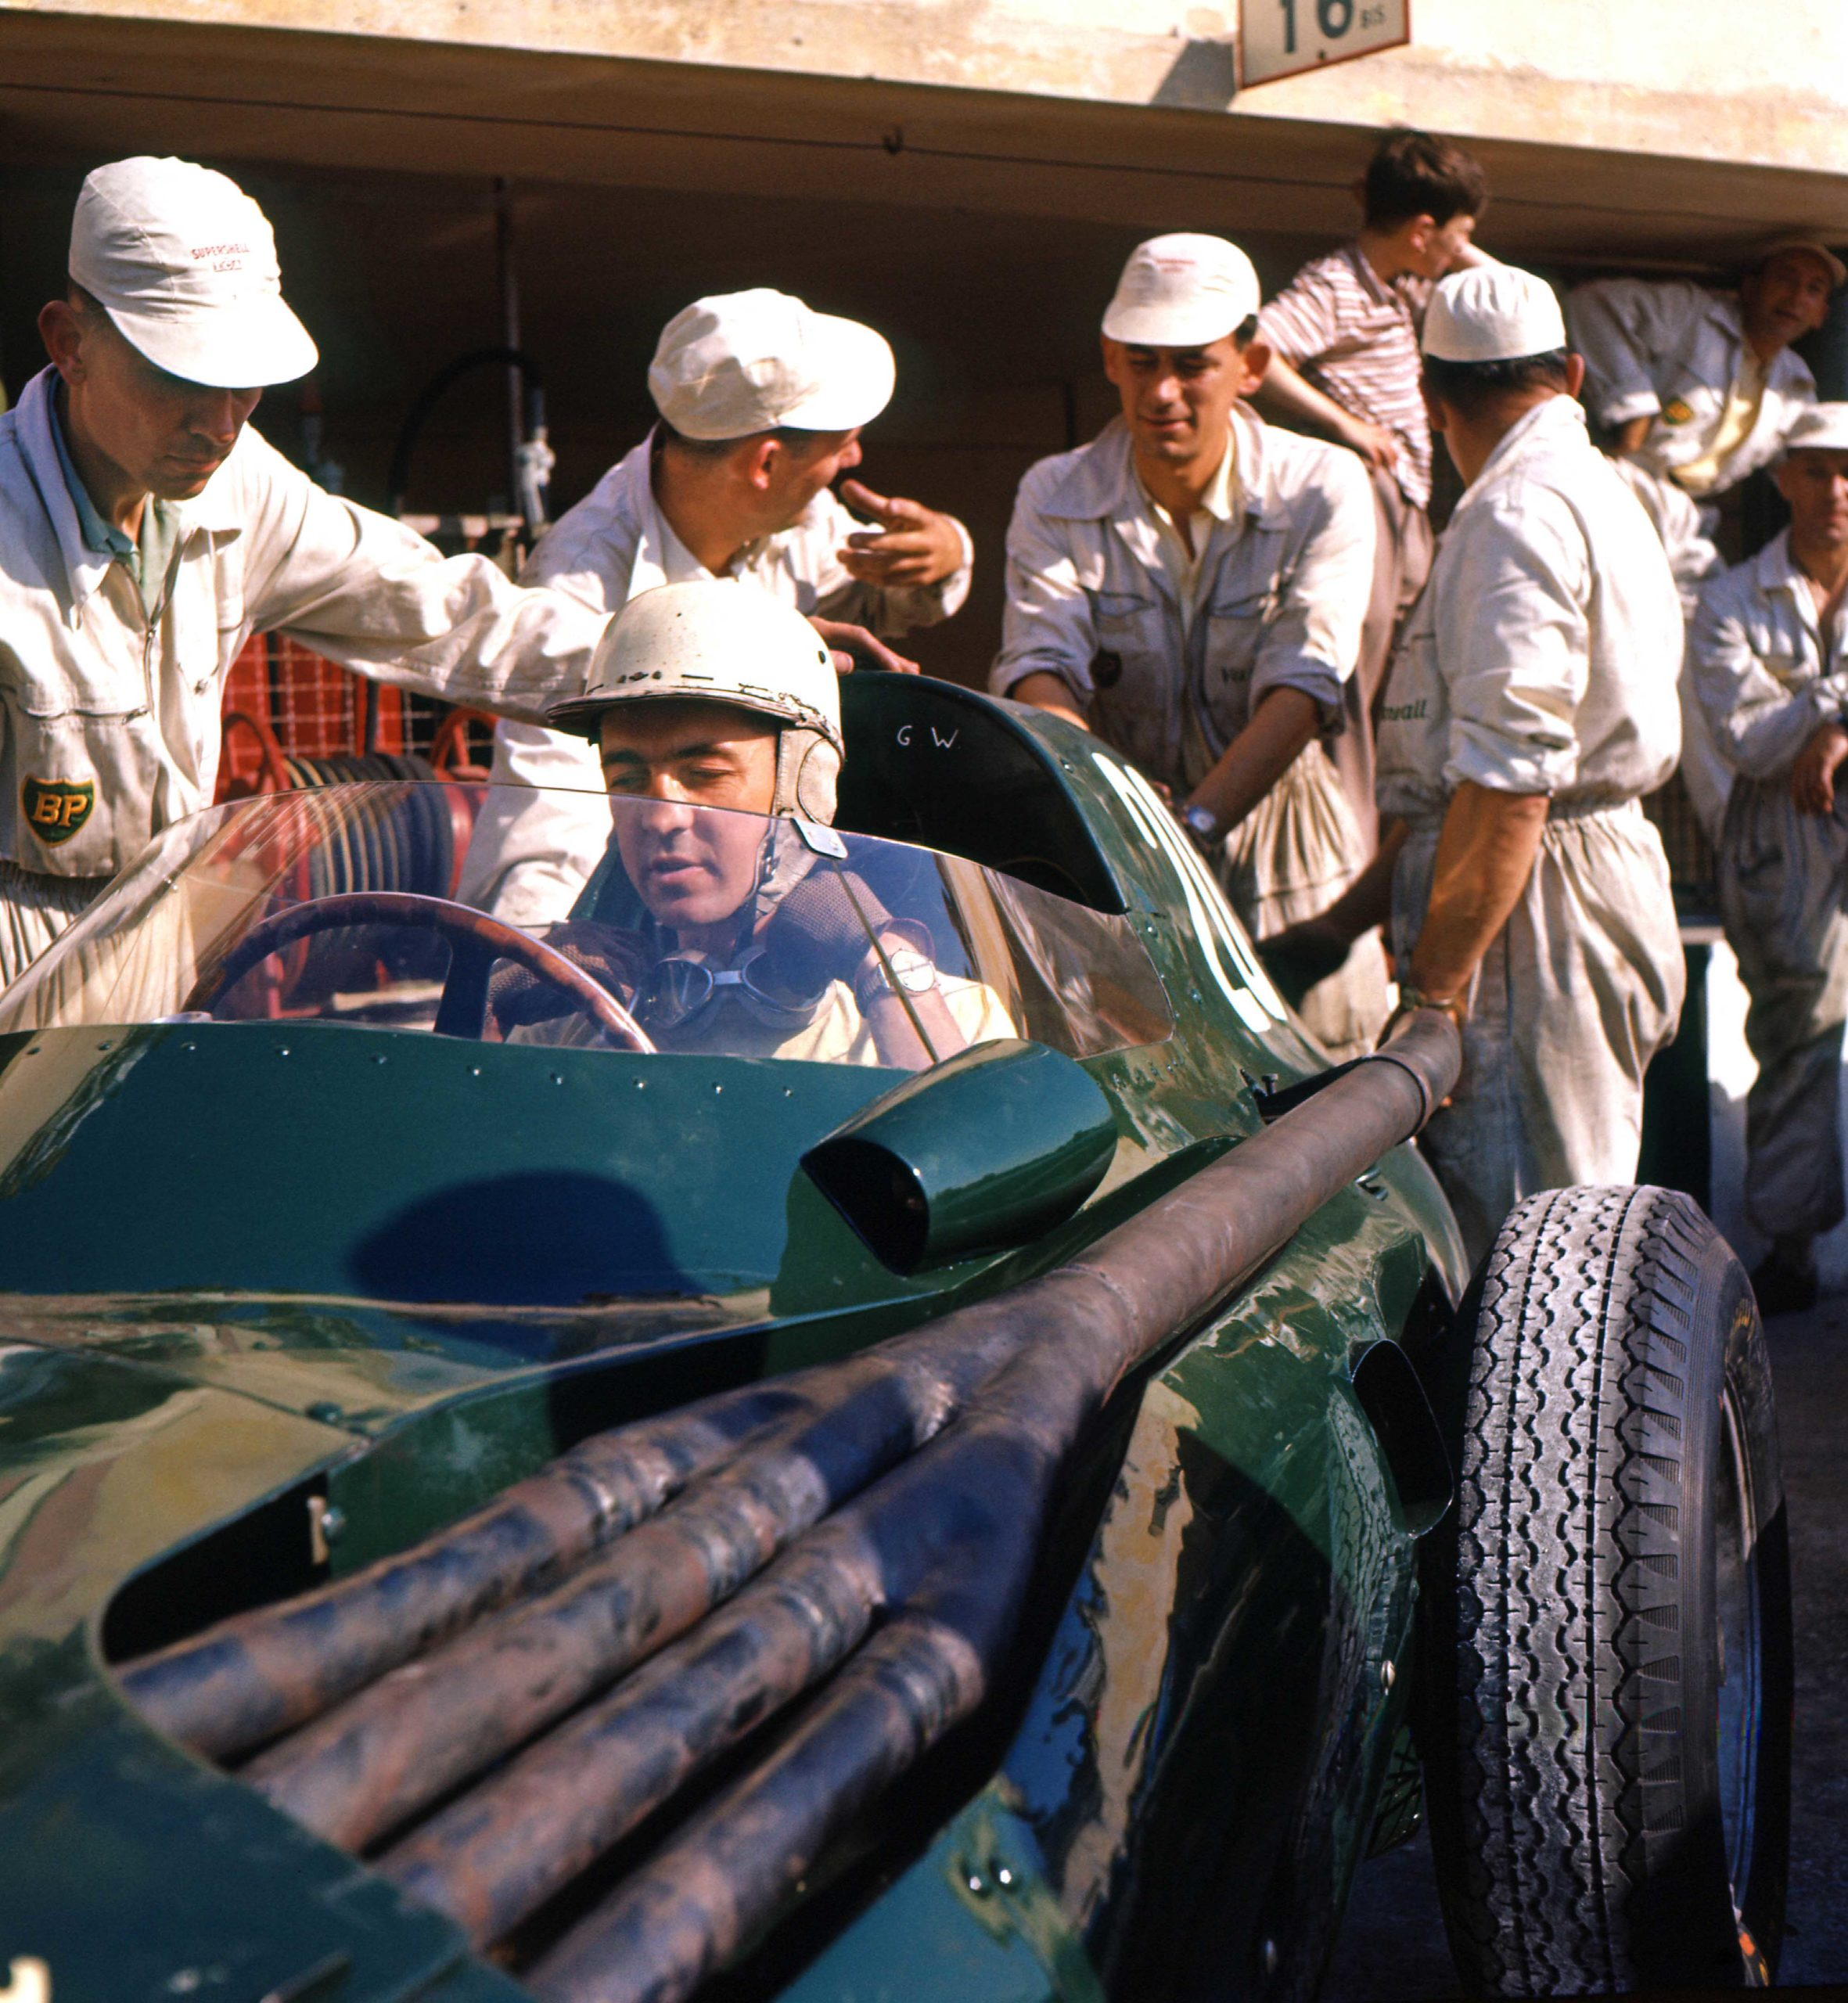 Stuart-Lewis-Evans-in-the-Vanwall-of-team-mate-Roy-Salvadori-with-mechanics-in-the-pits-before-the-1957-Franch-Grand-Prix-in-Rouen